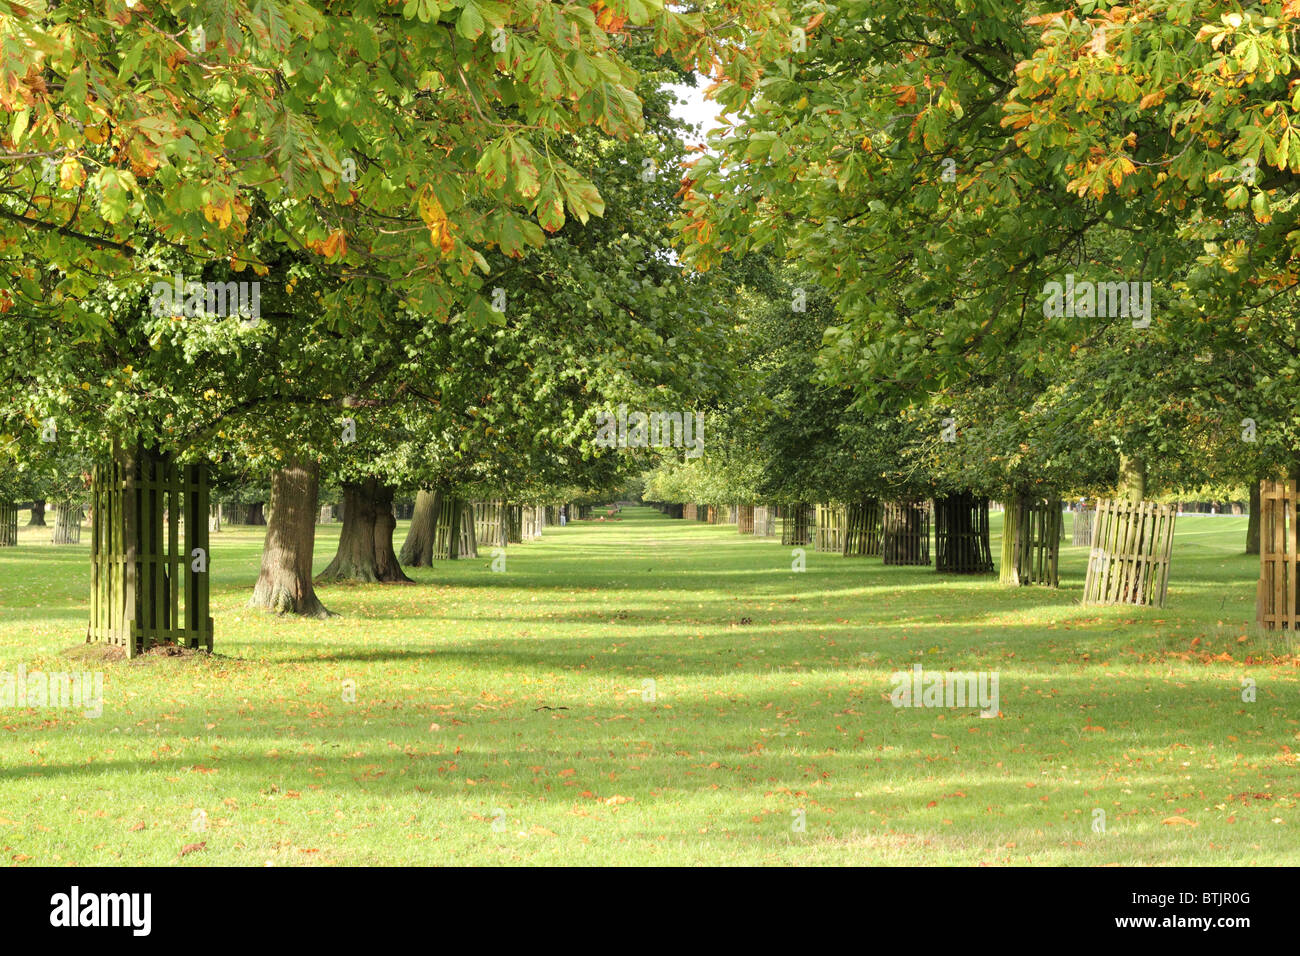 View of two straight rows of trees at Bushy Park, Surrey, England, UK Stock Photo